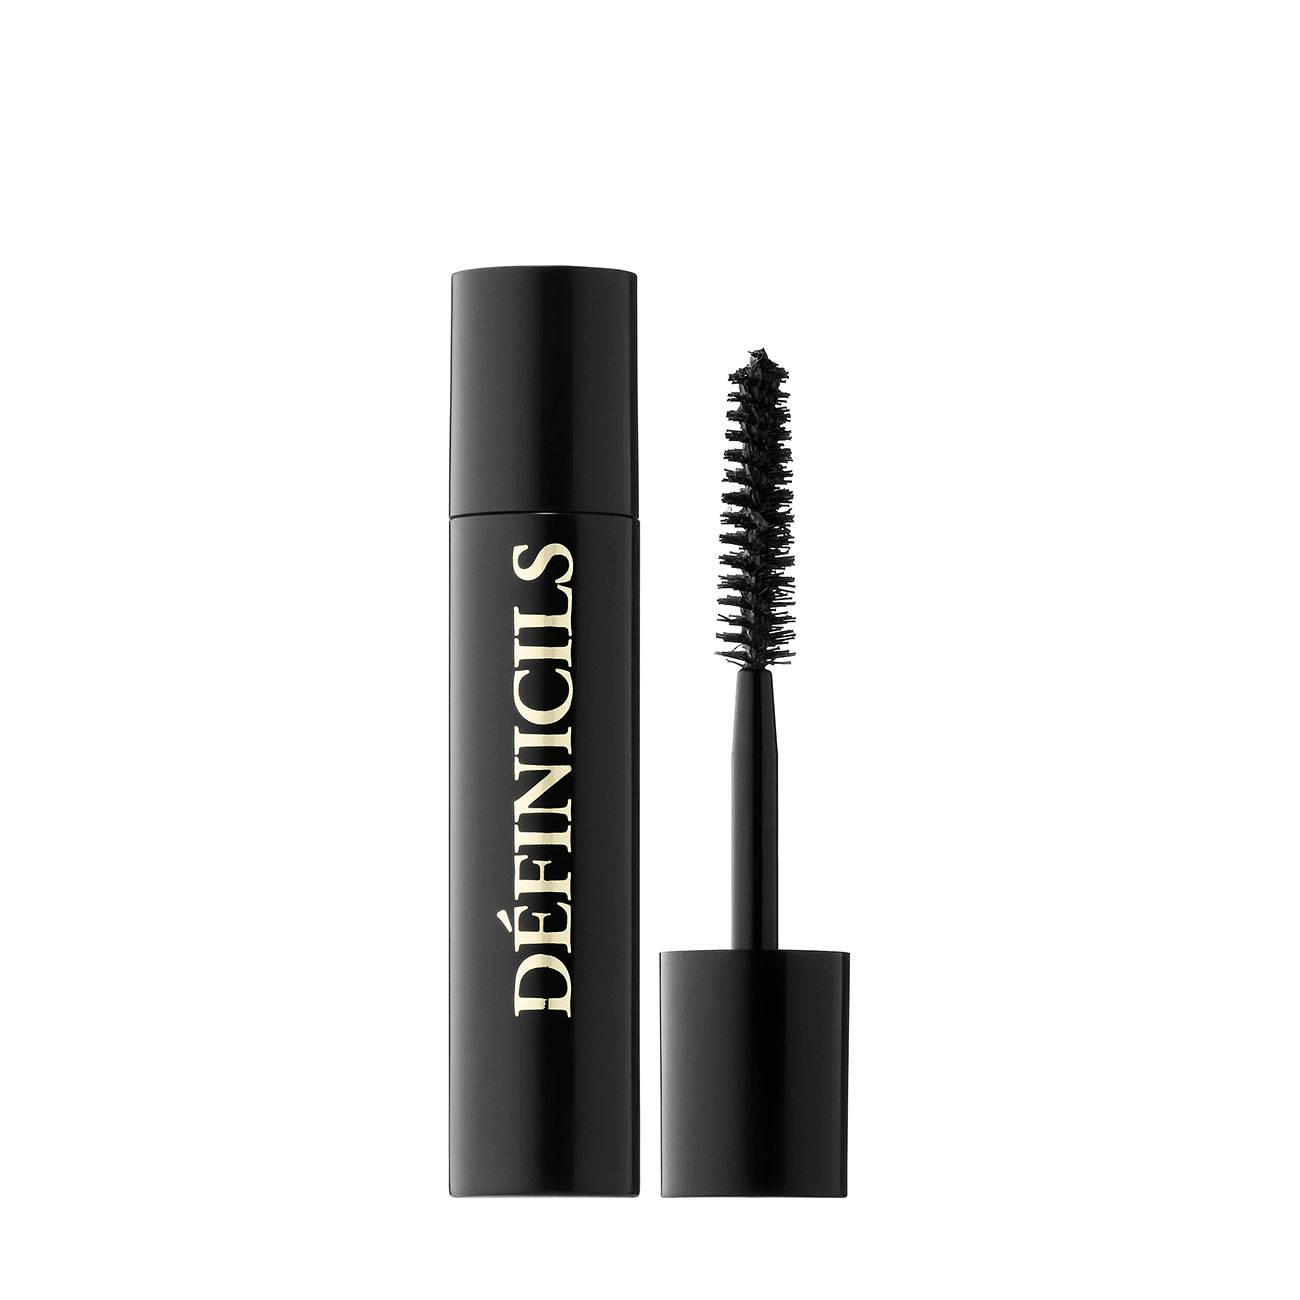 DÉFINICILS MASCARA MINI 4ml imagine produs